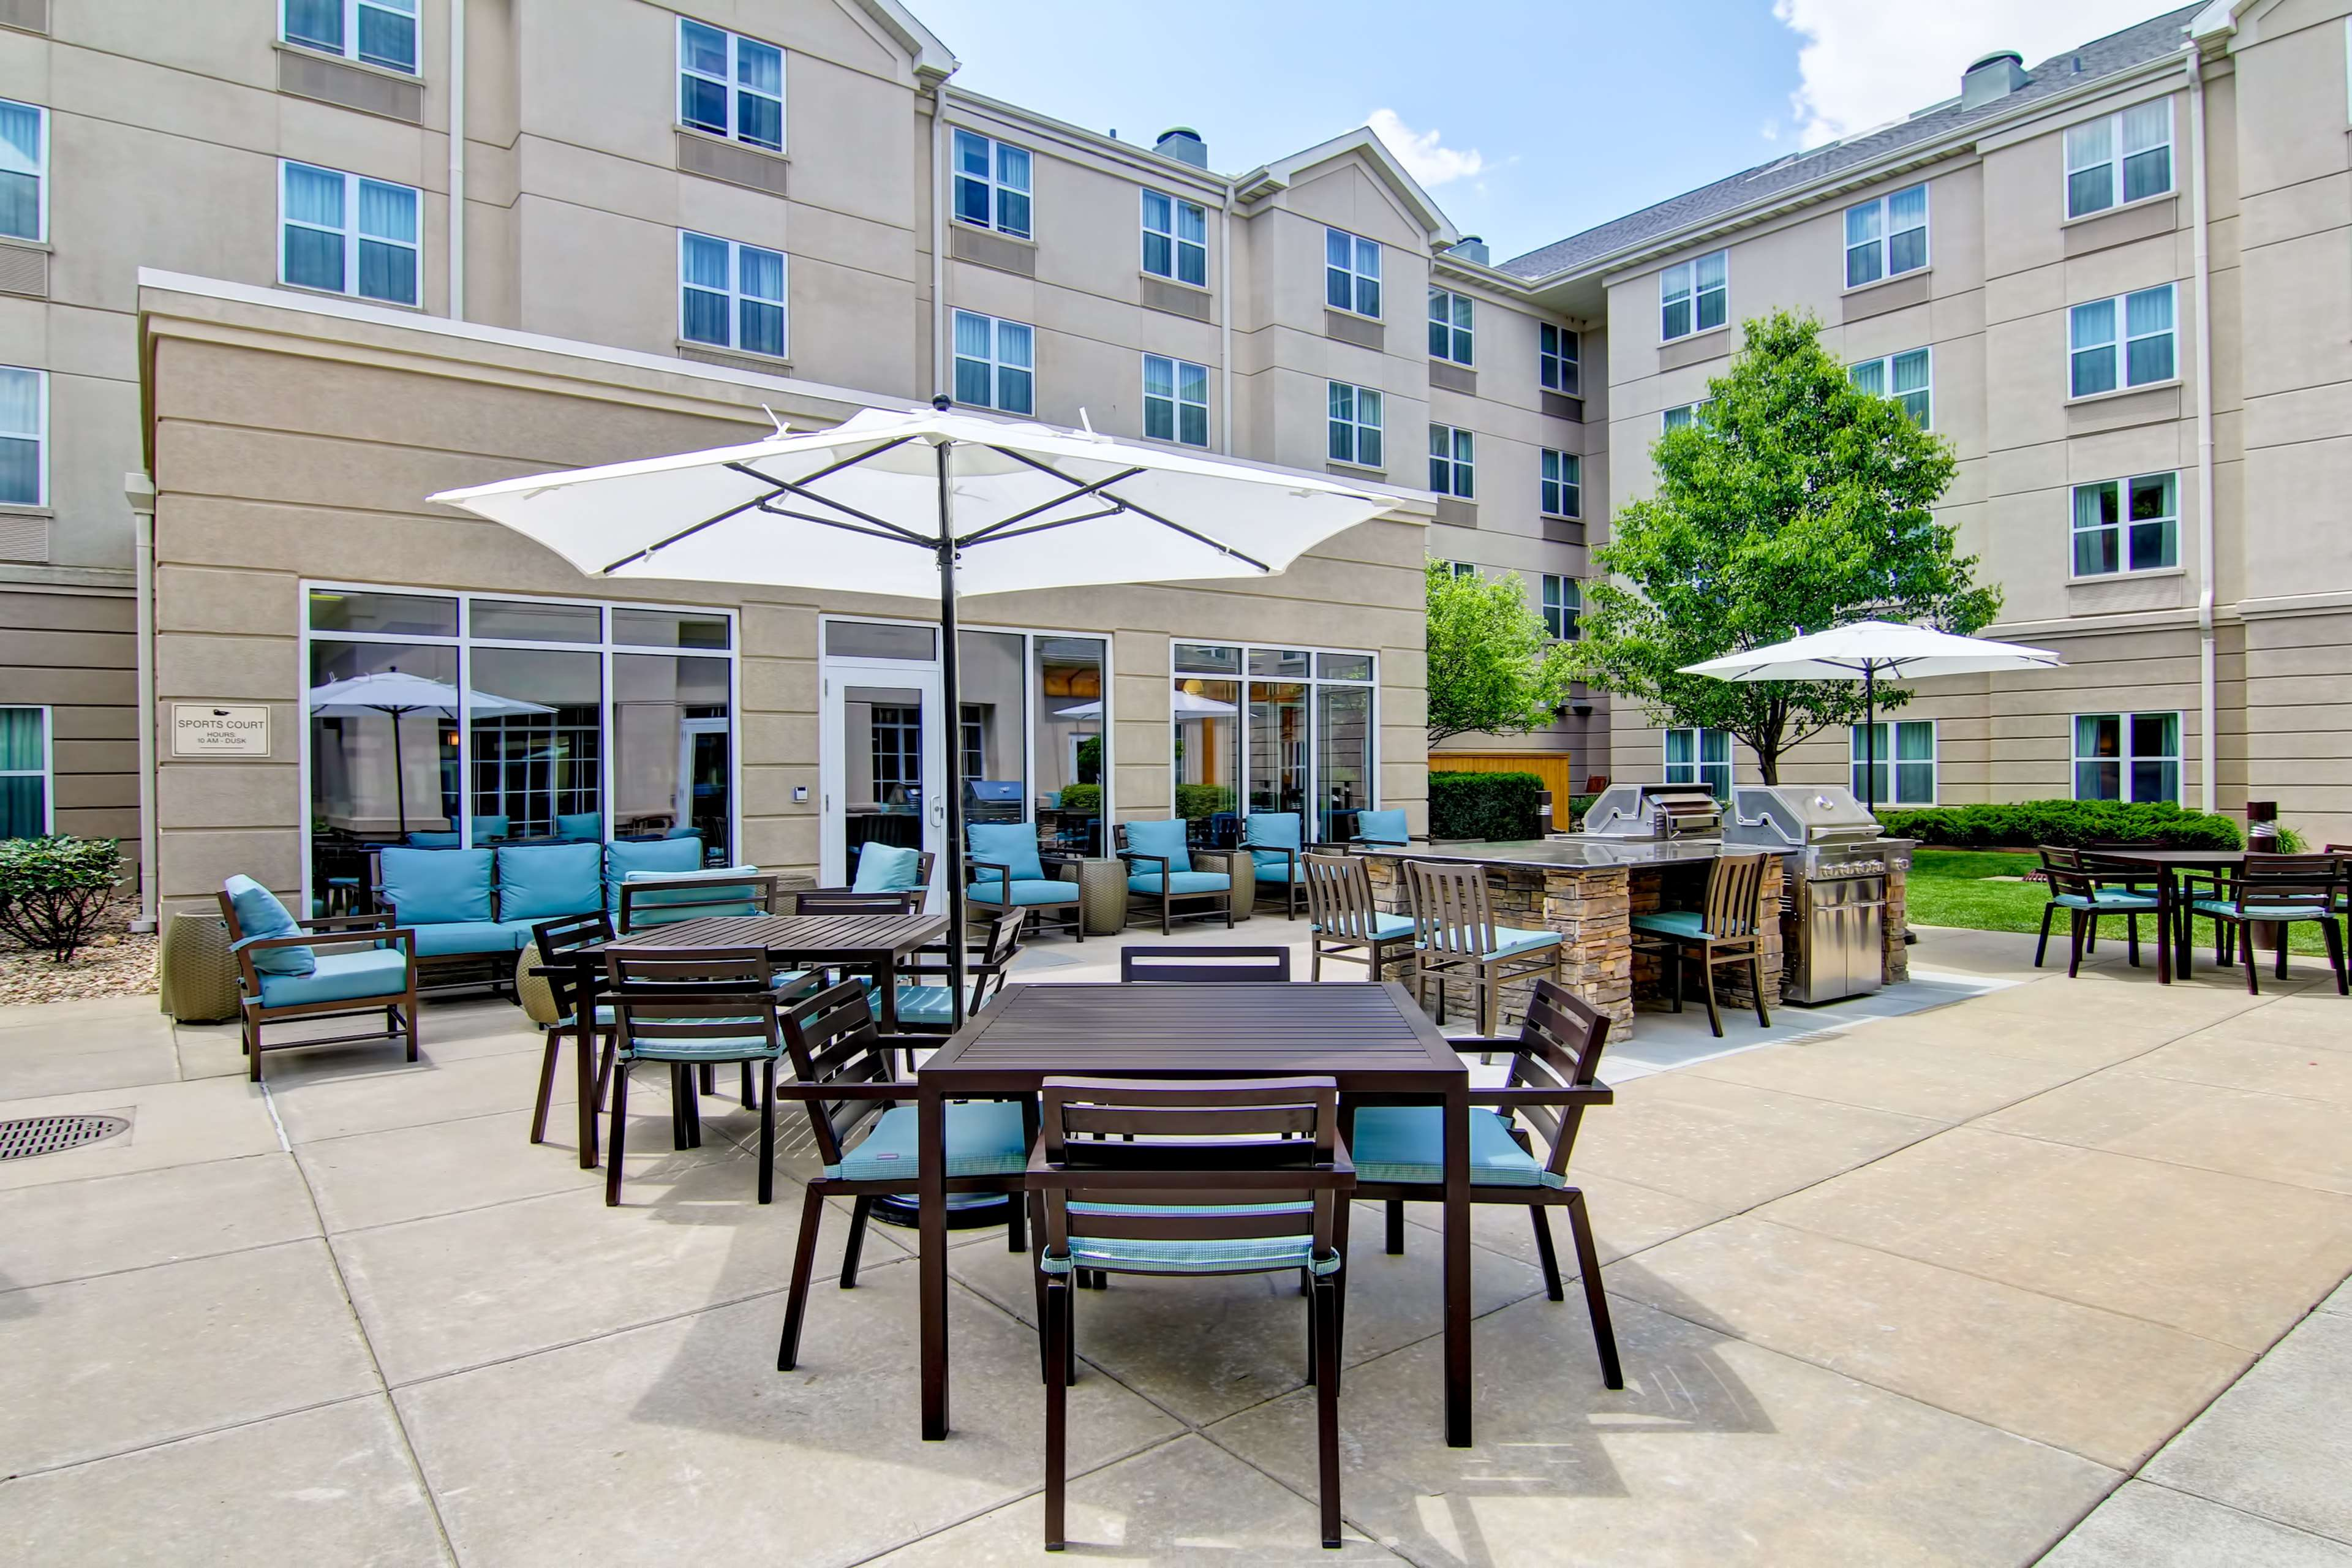 Homewood Suites by Hilton Bentonville-Rogers image 37